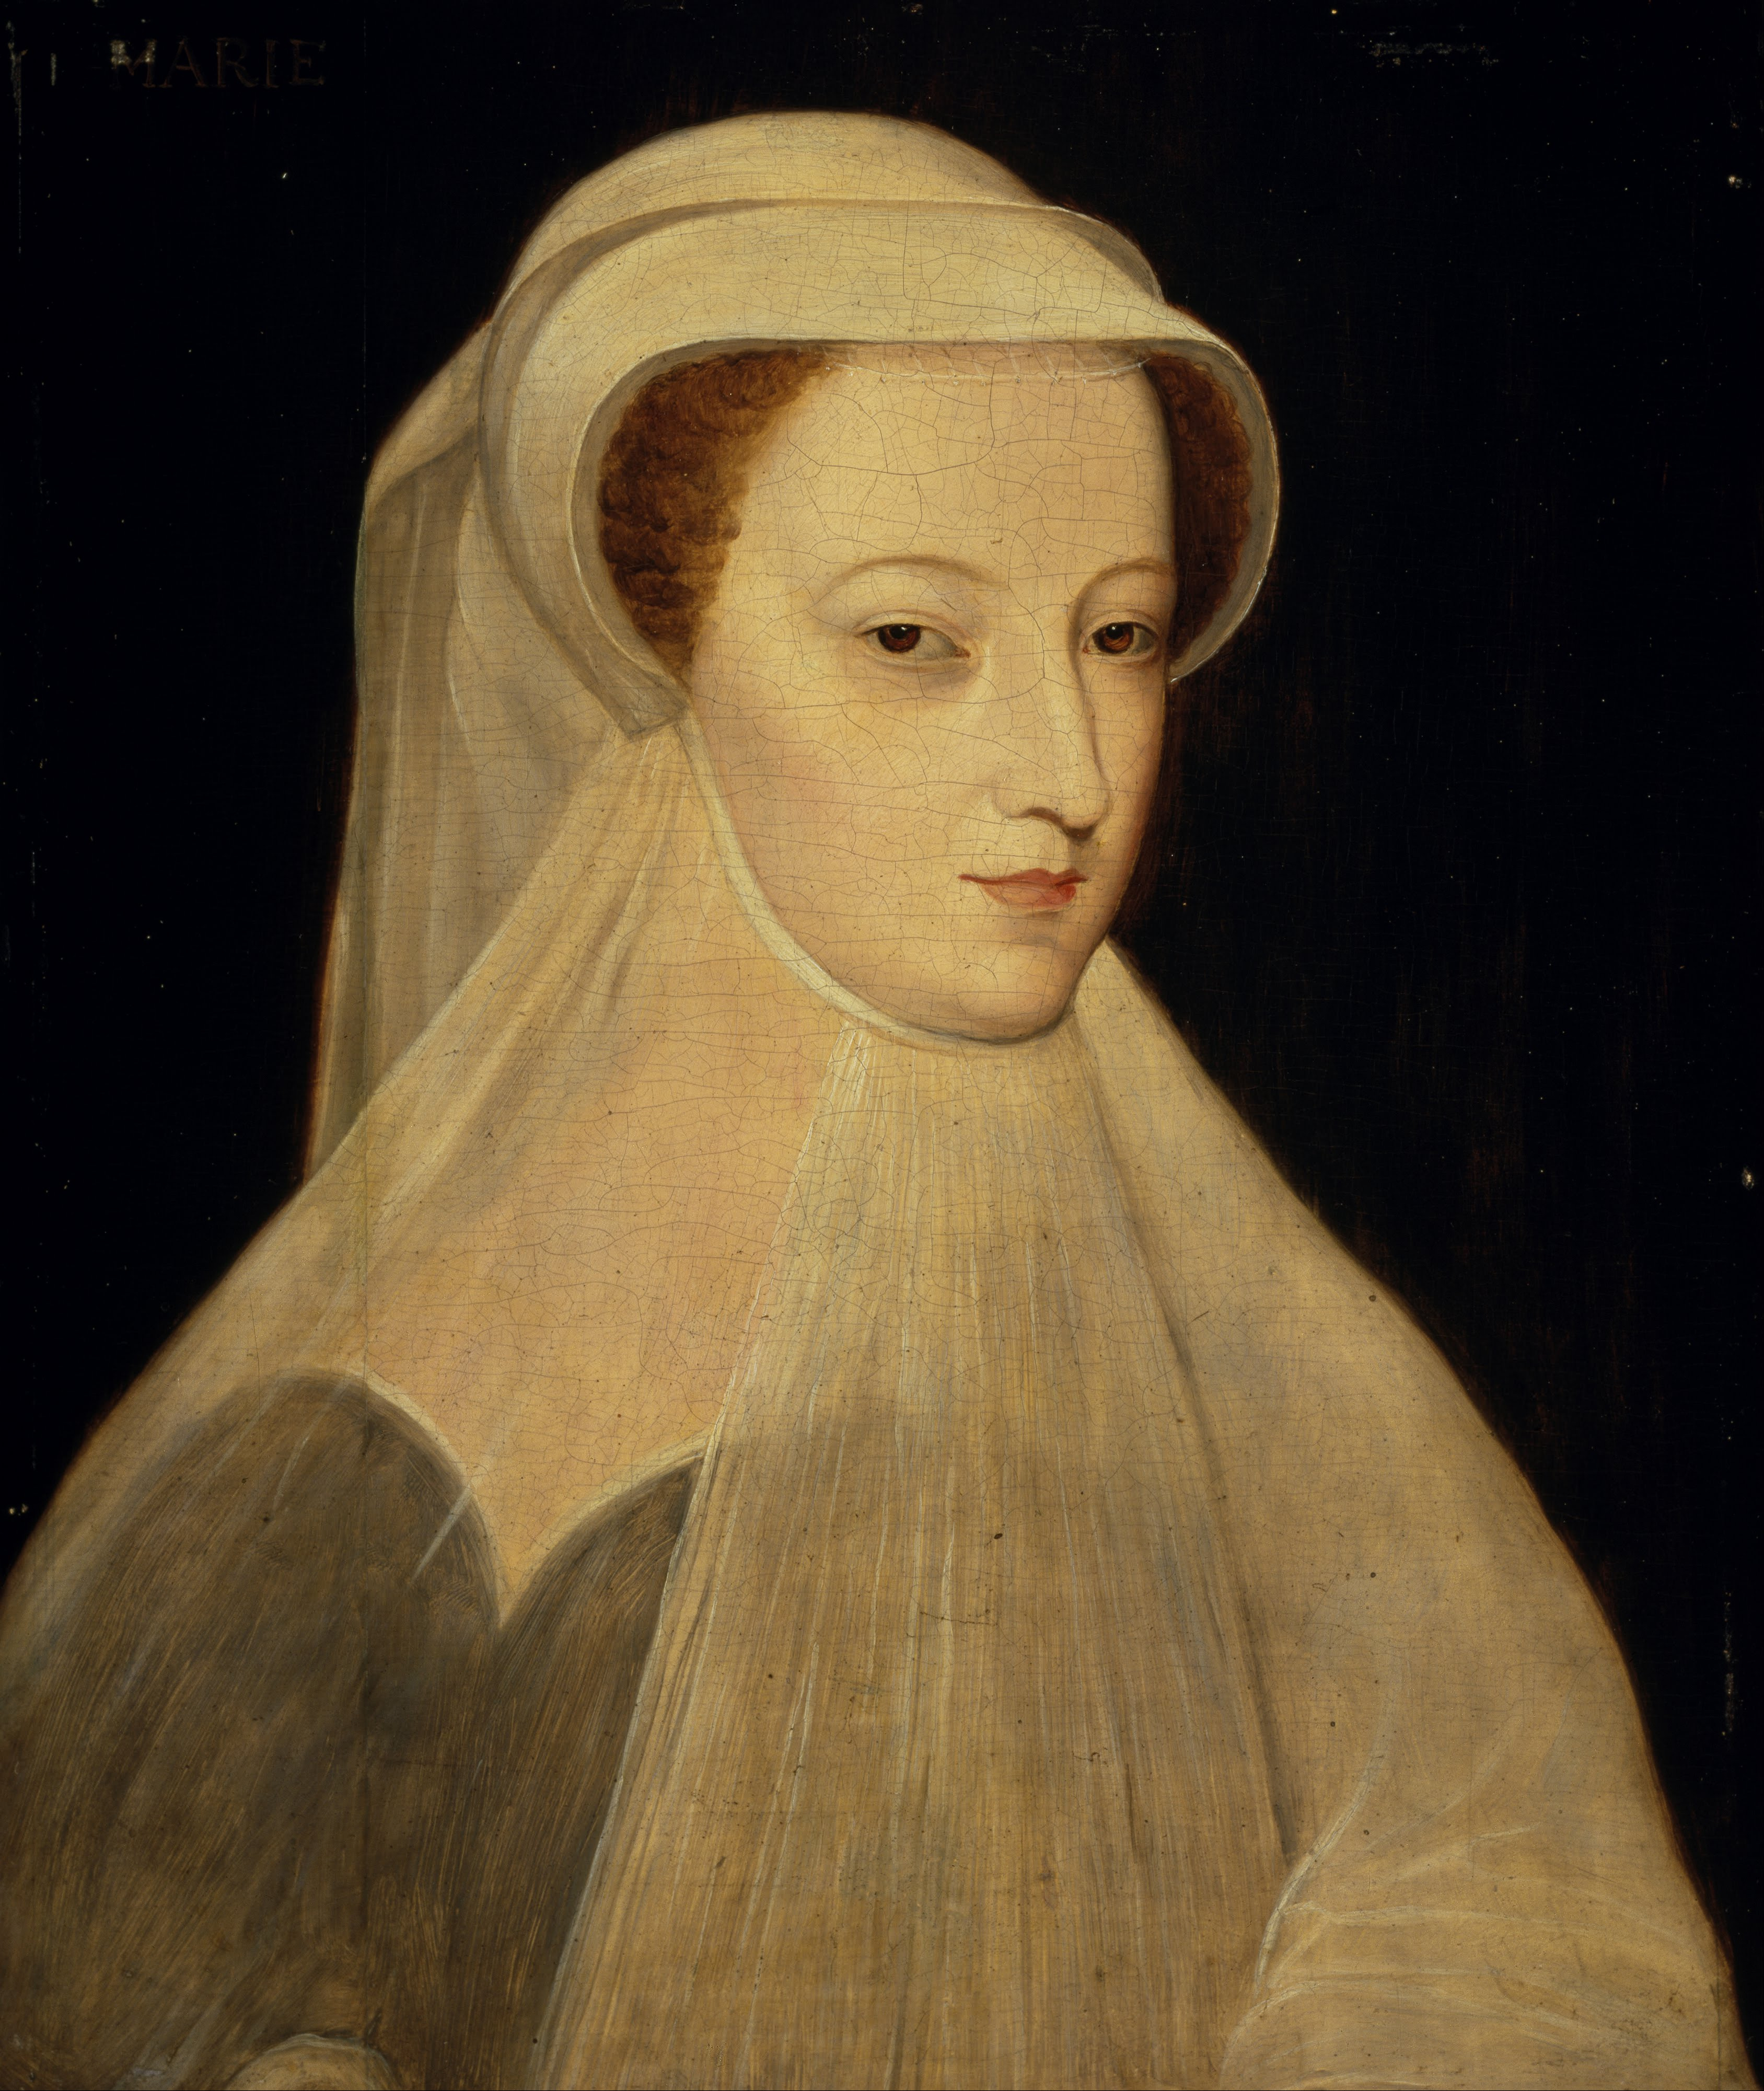 File:Unknown after Francois Clouet - Mary, Queen of Scots, 1542 - 1587